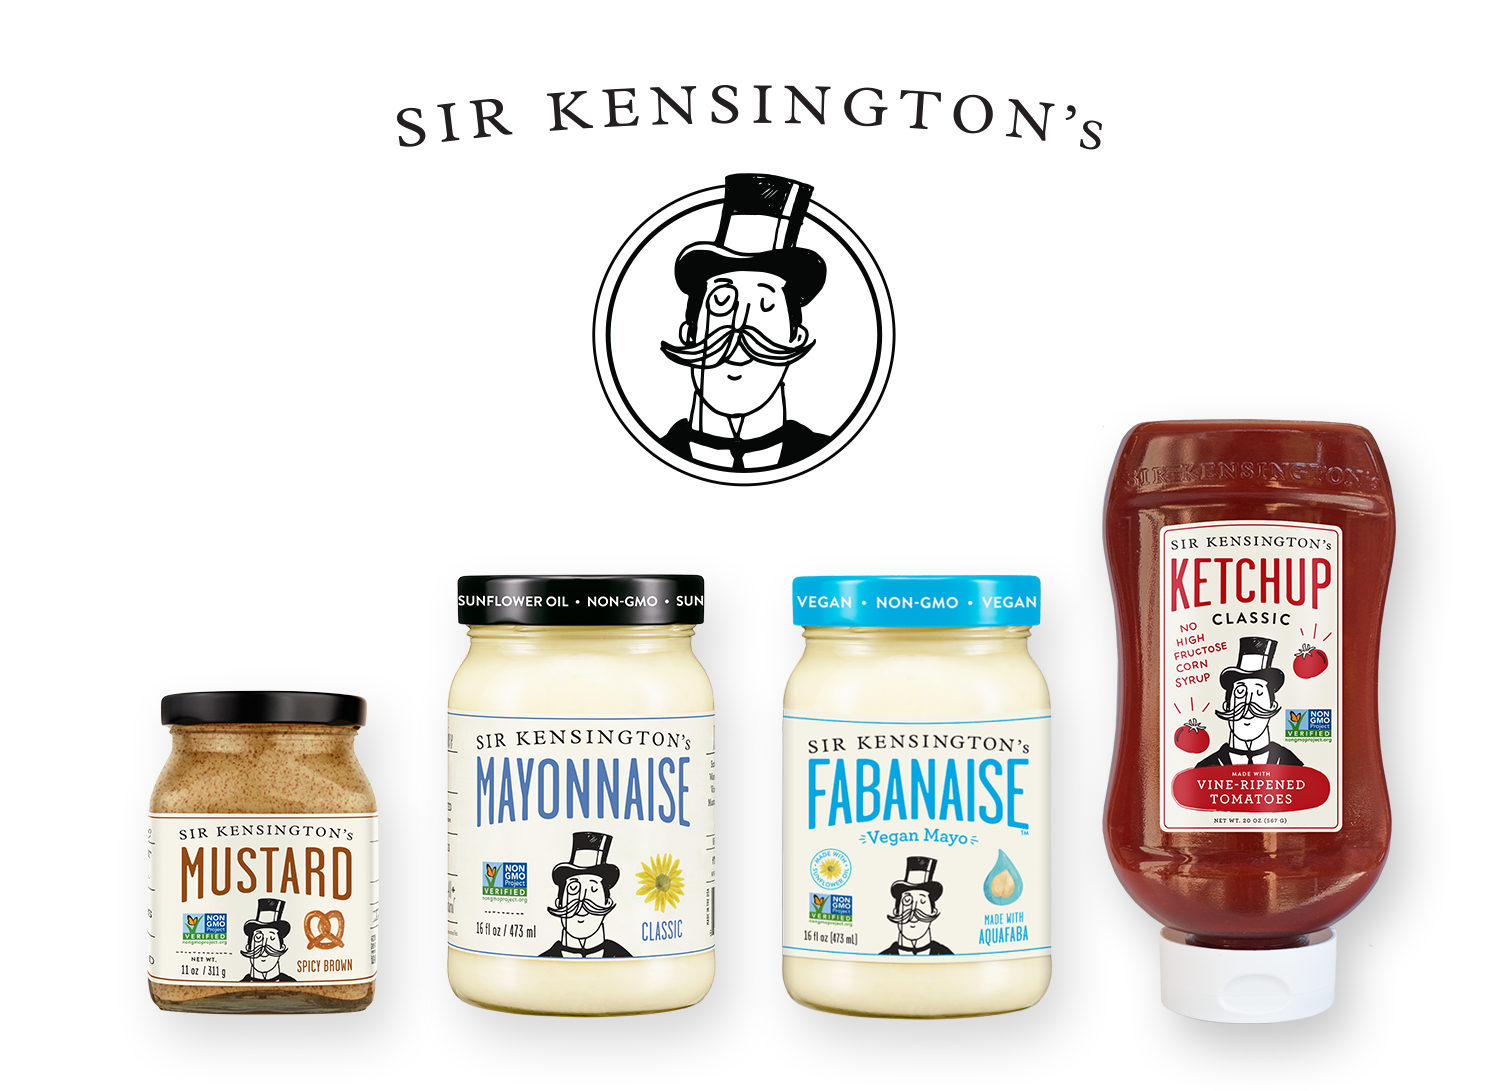 Unilever, the maker of Hellmann's mayo, has agreed to acquire condiment maker Sir Kensington's.